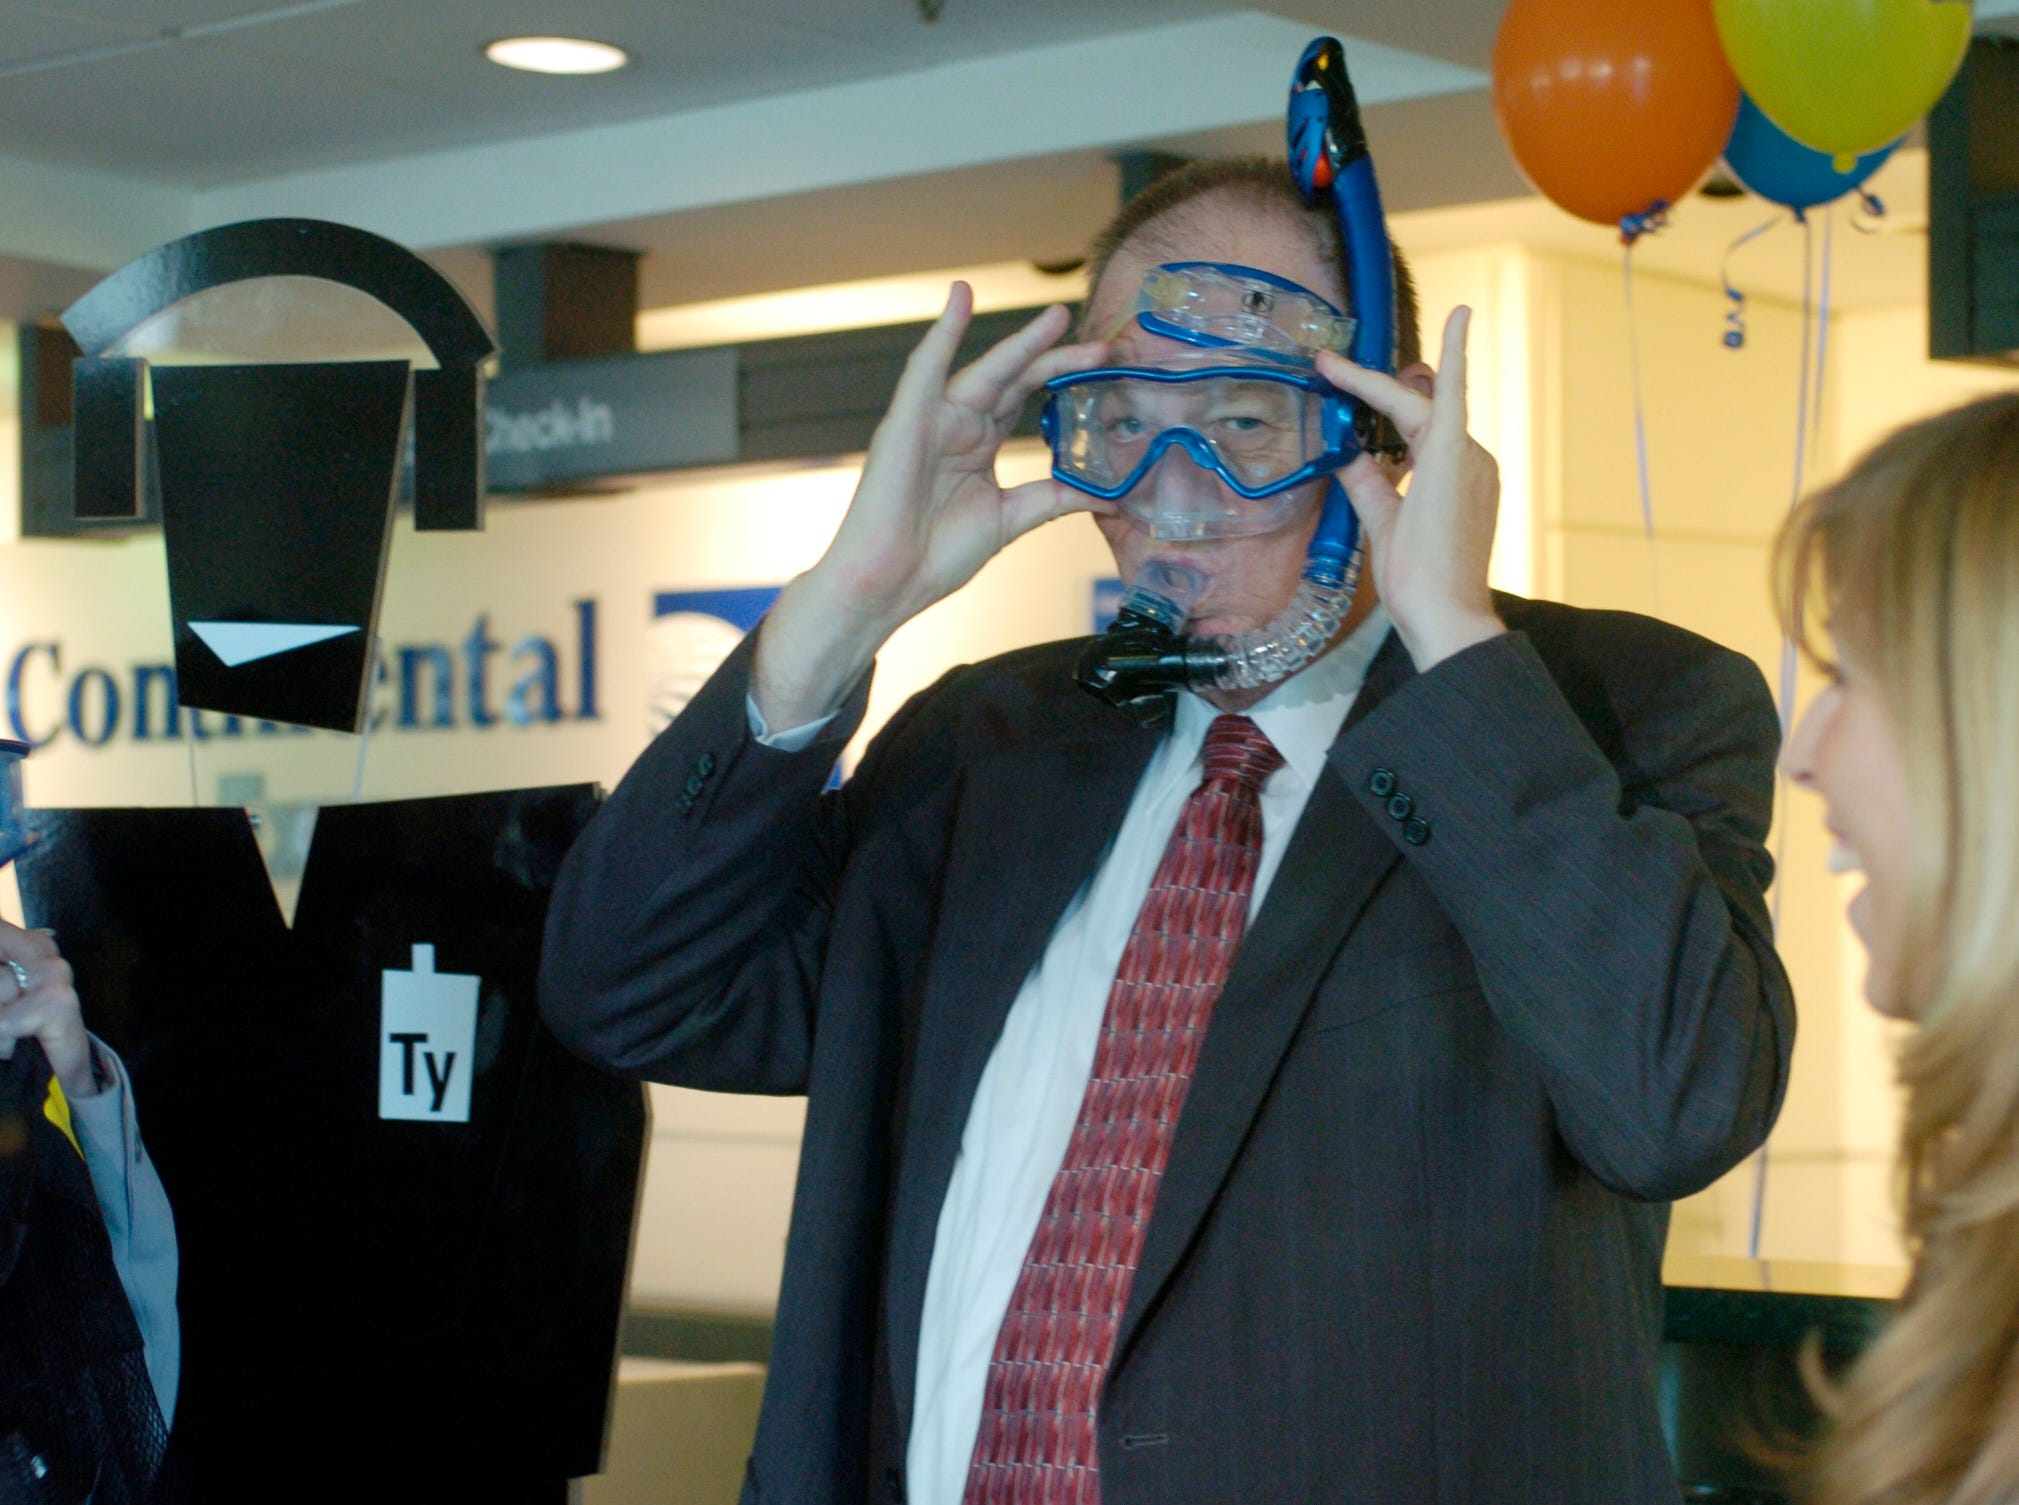 MKAA President Bill Marrison tries on a snorkeling mask Wednesday that is a gift from Tyri Squyres (CQ), right, of Allegiant Air at McGhee Tyson Airport in September 2006.